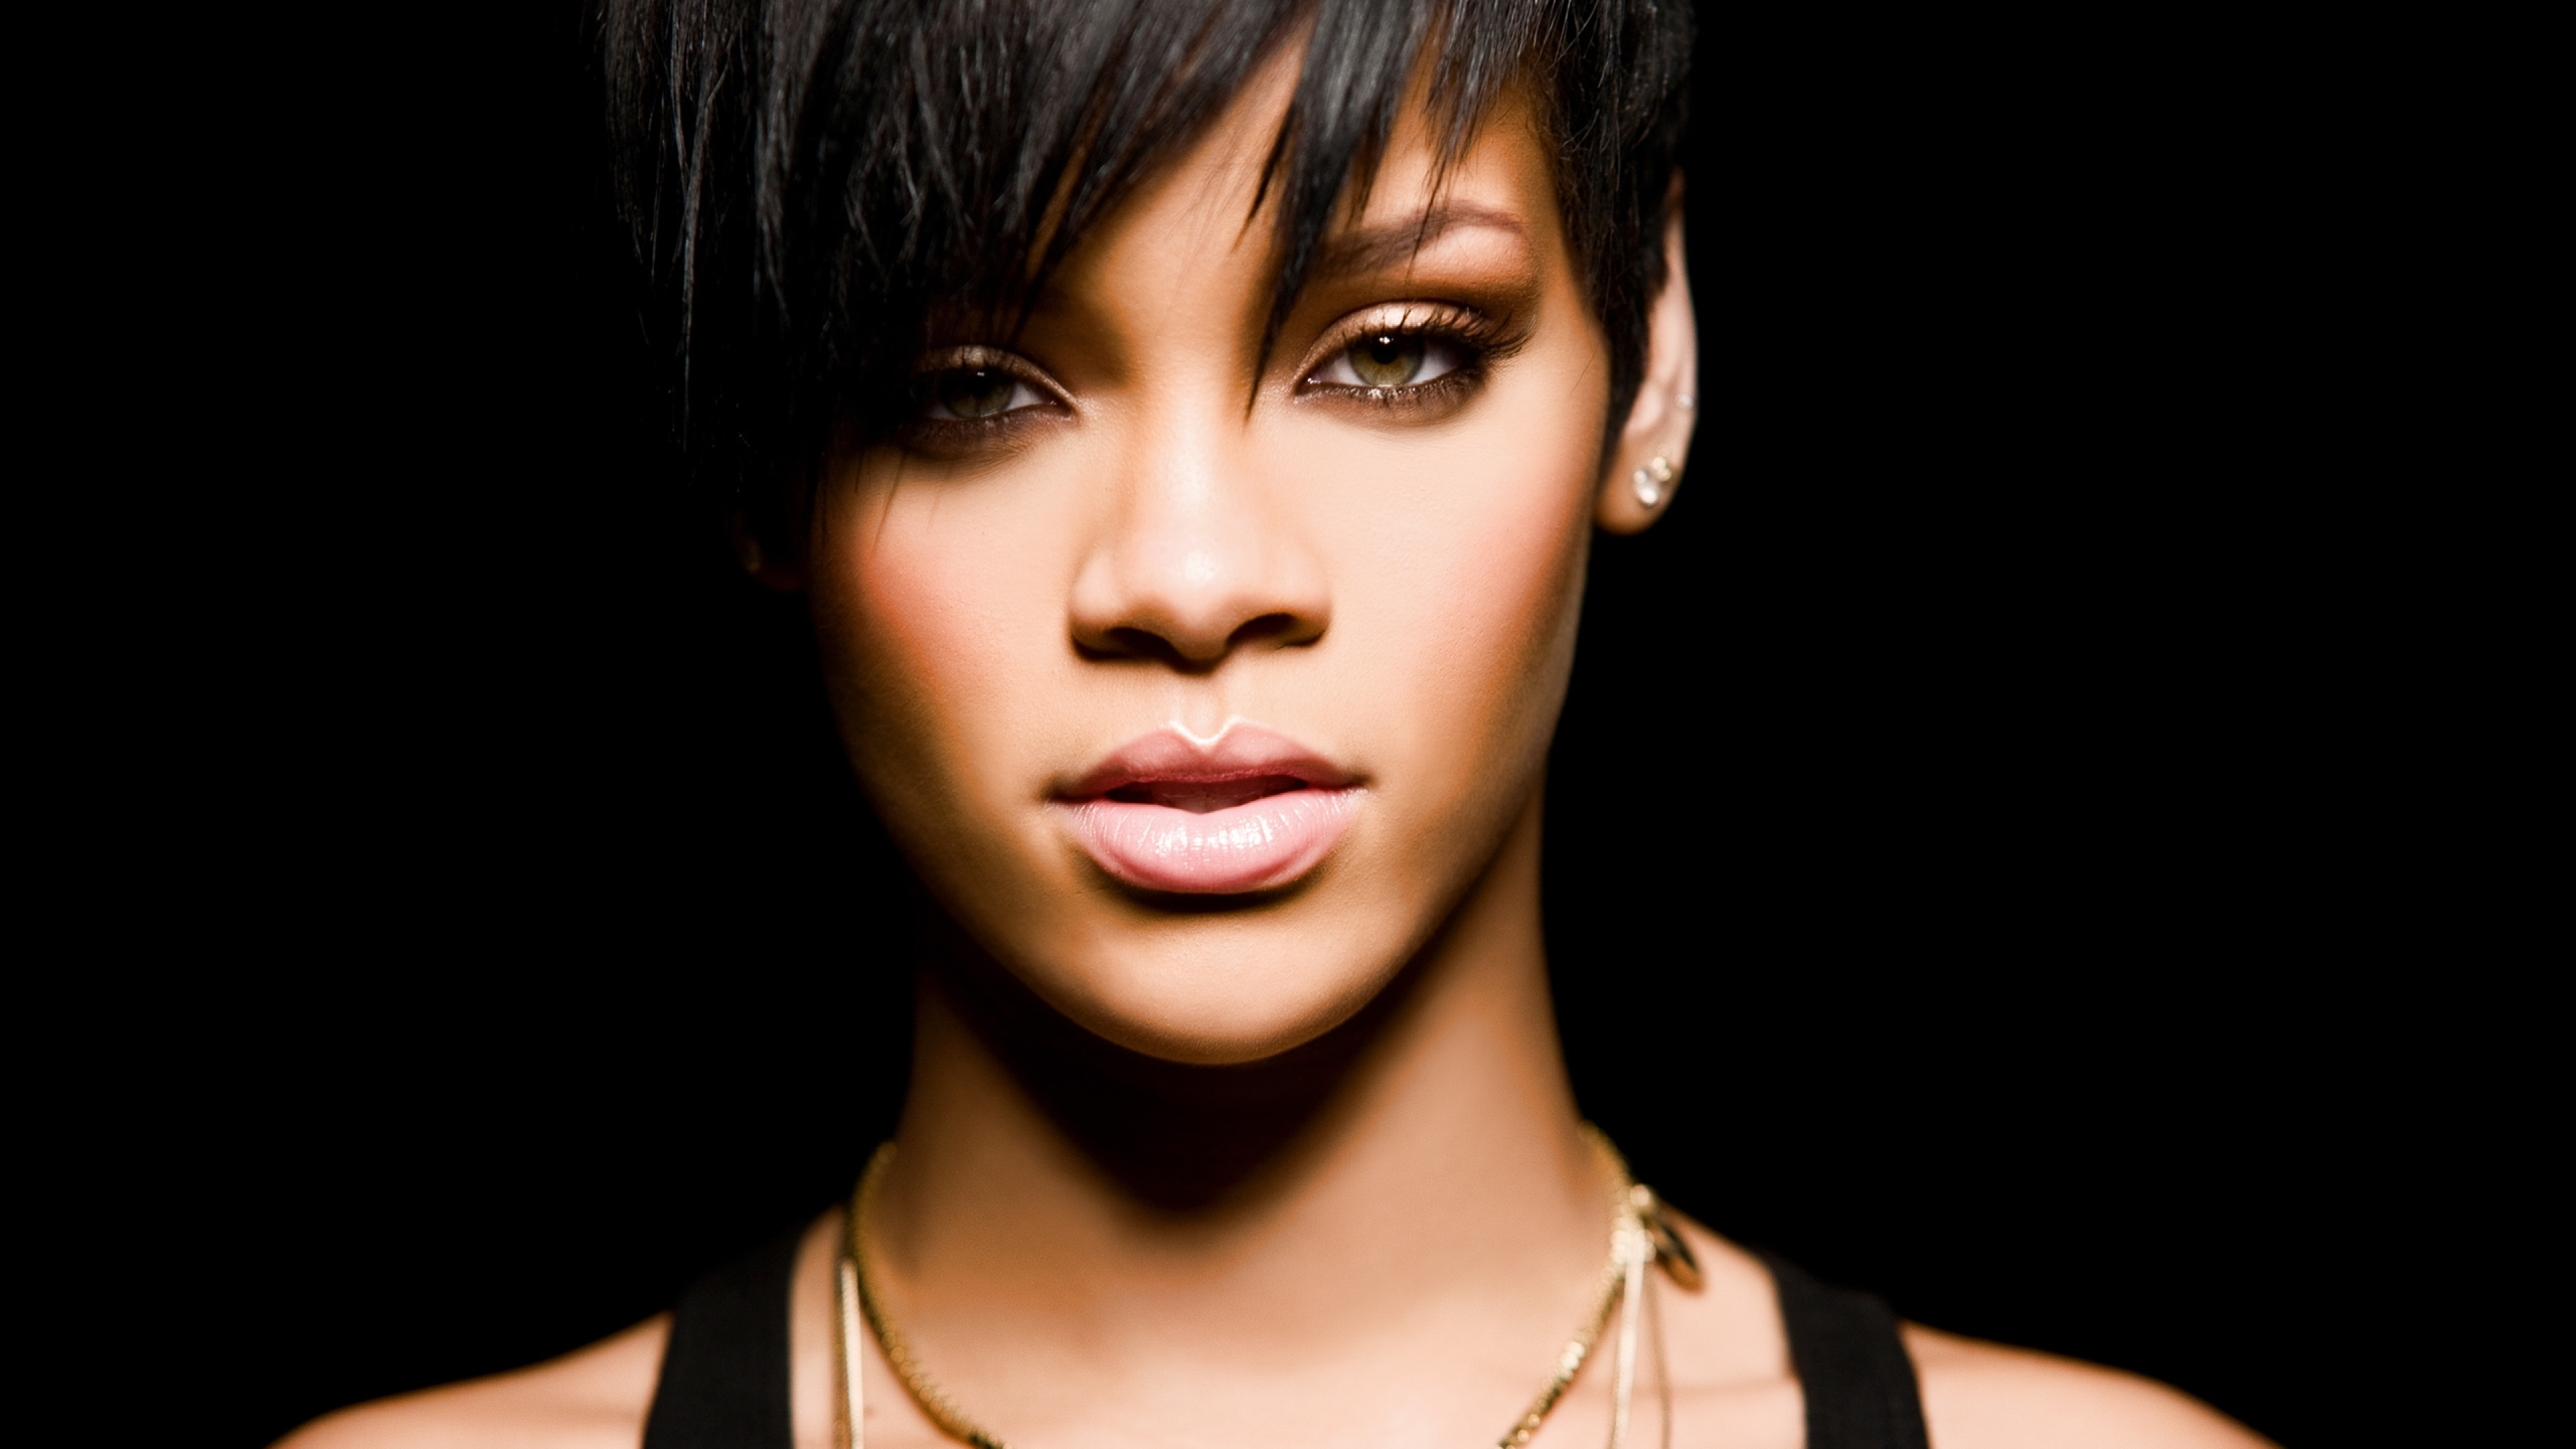 3840x2160 Rihanna Short Hair Wallpapers 4k Wallpaper Hd Celebrities 4k Wallpapers Images Photos And Background